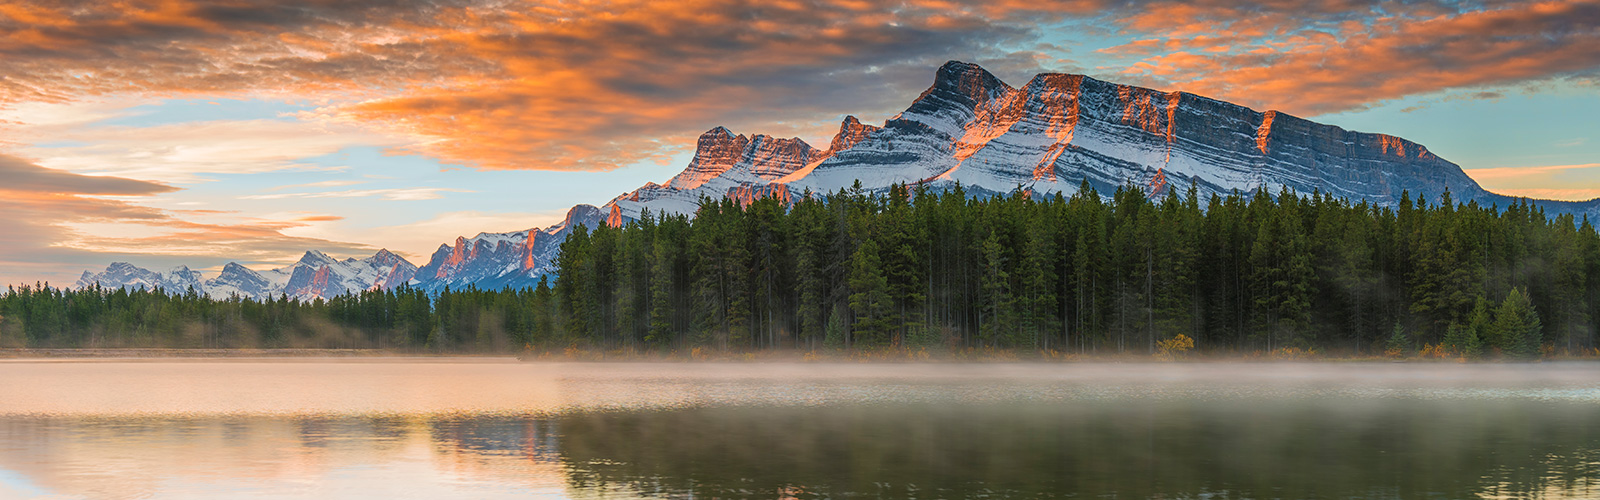 Mount Rundle at sunset in Banff National Park